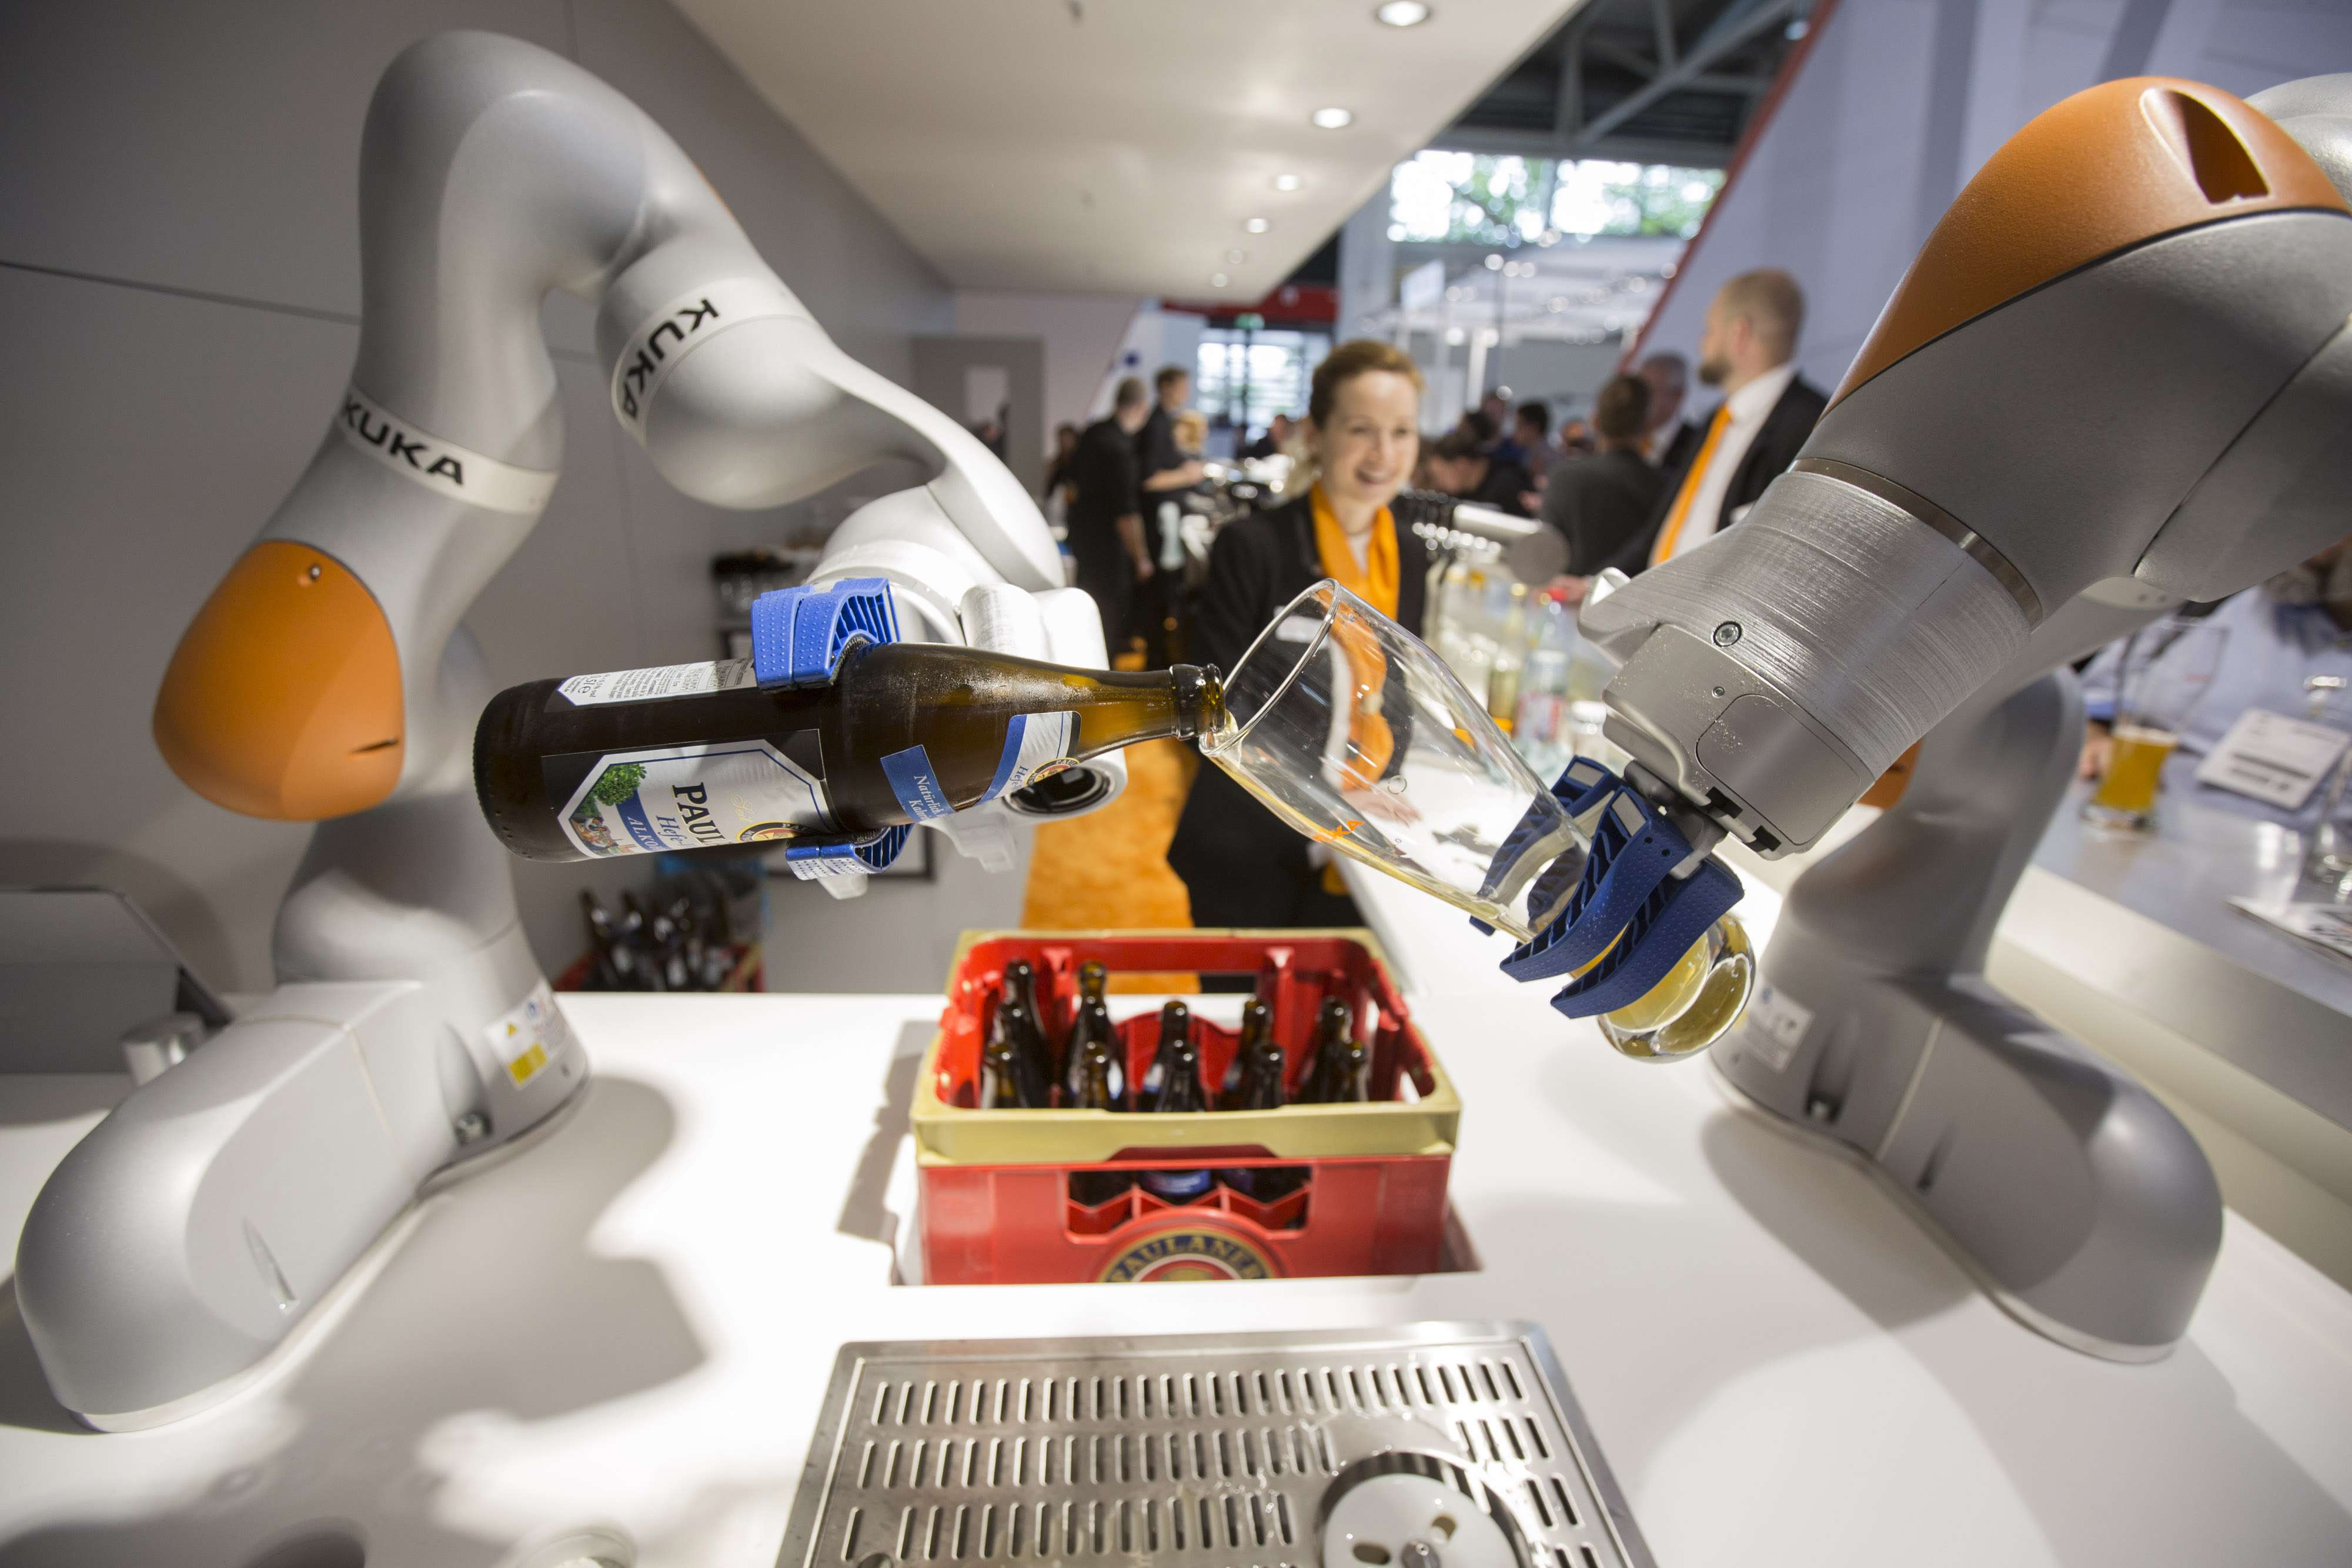 Midea to spend billions on building industrial robots after buying Kuka